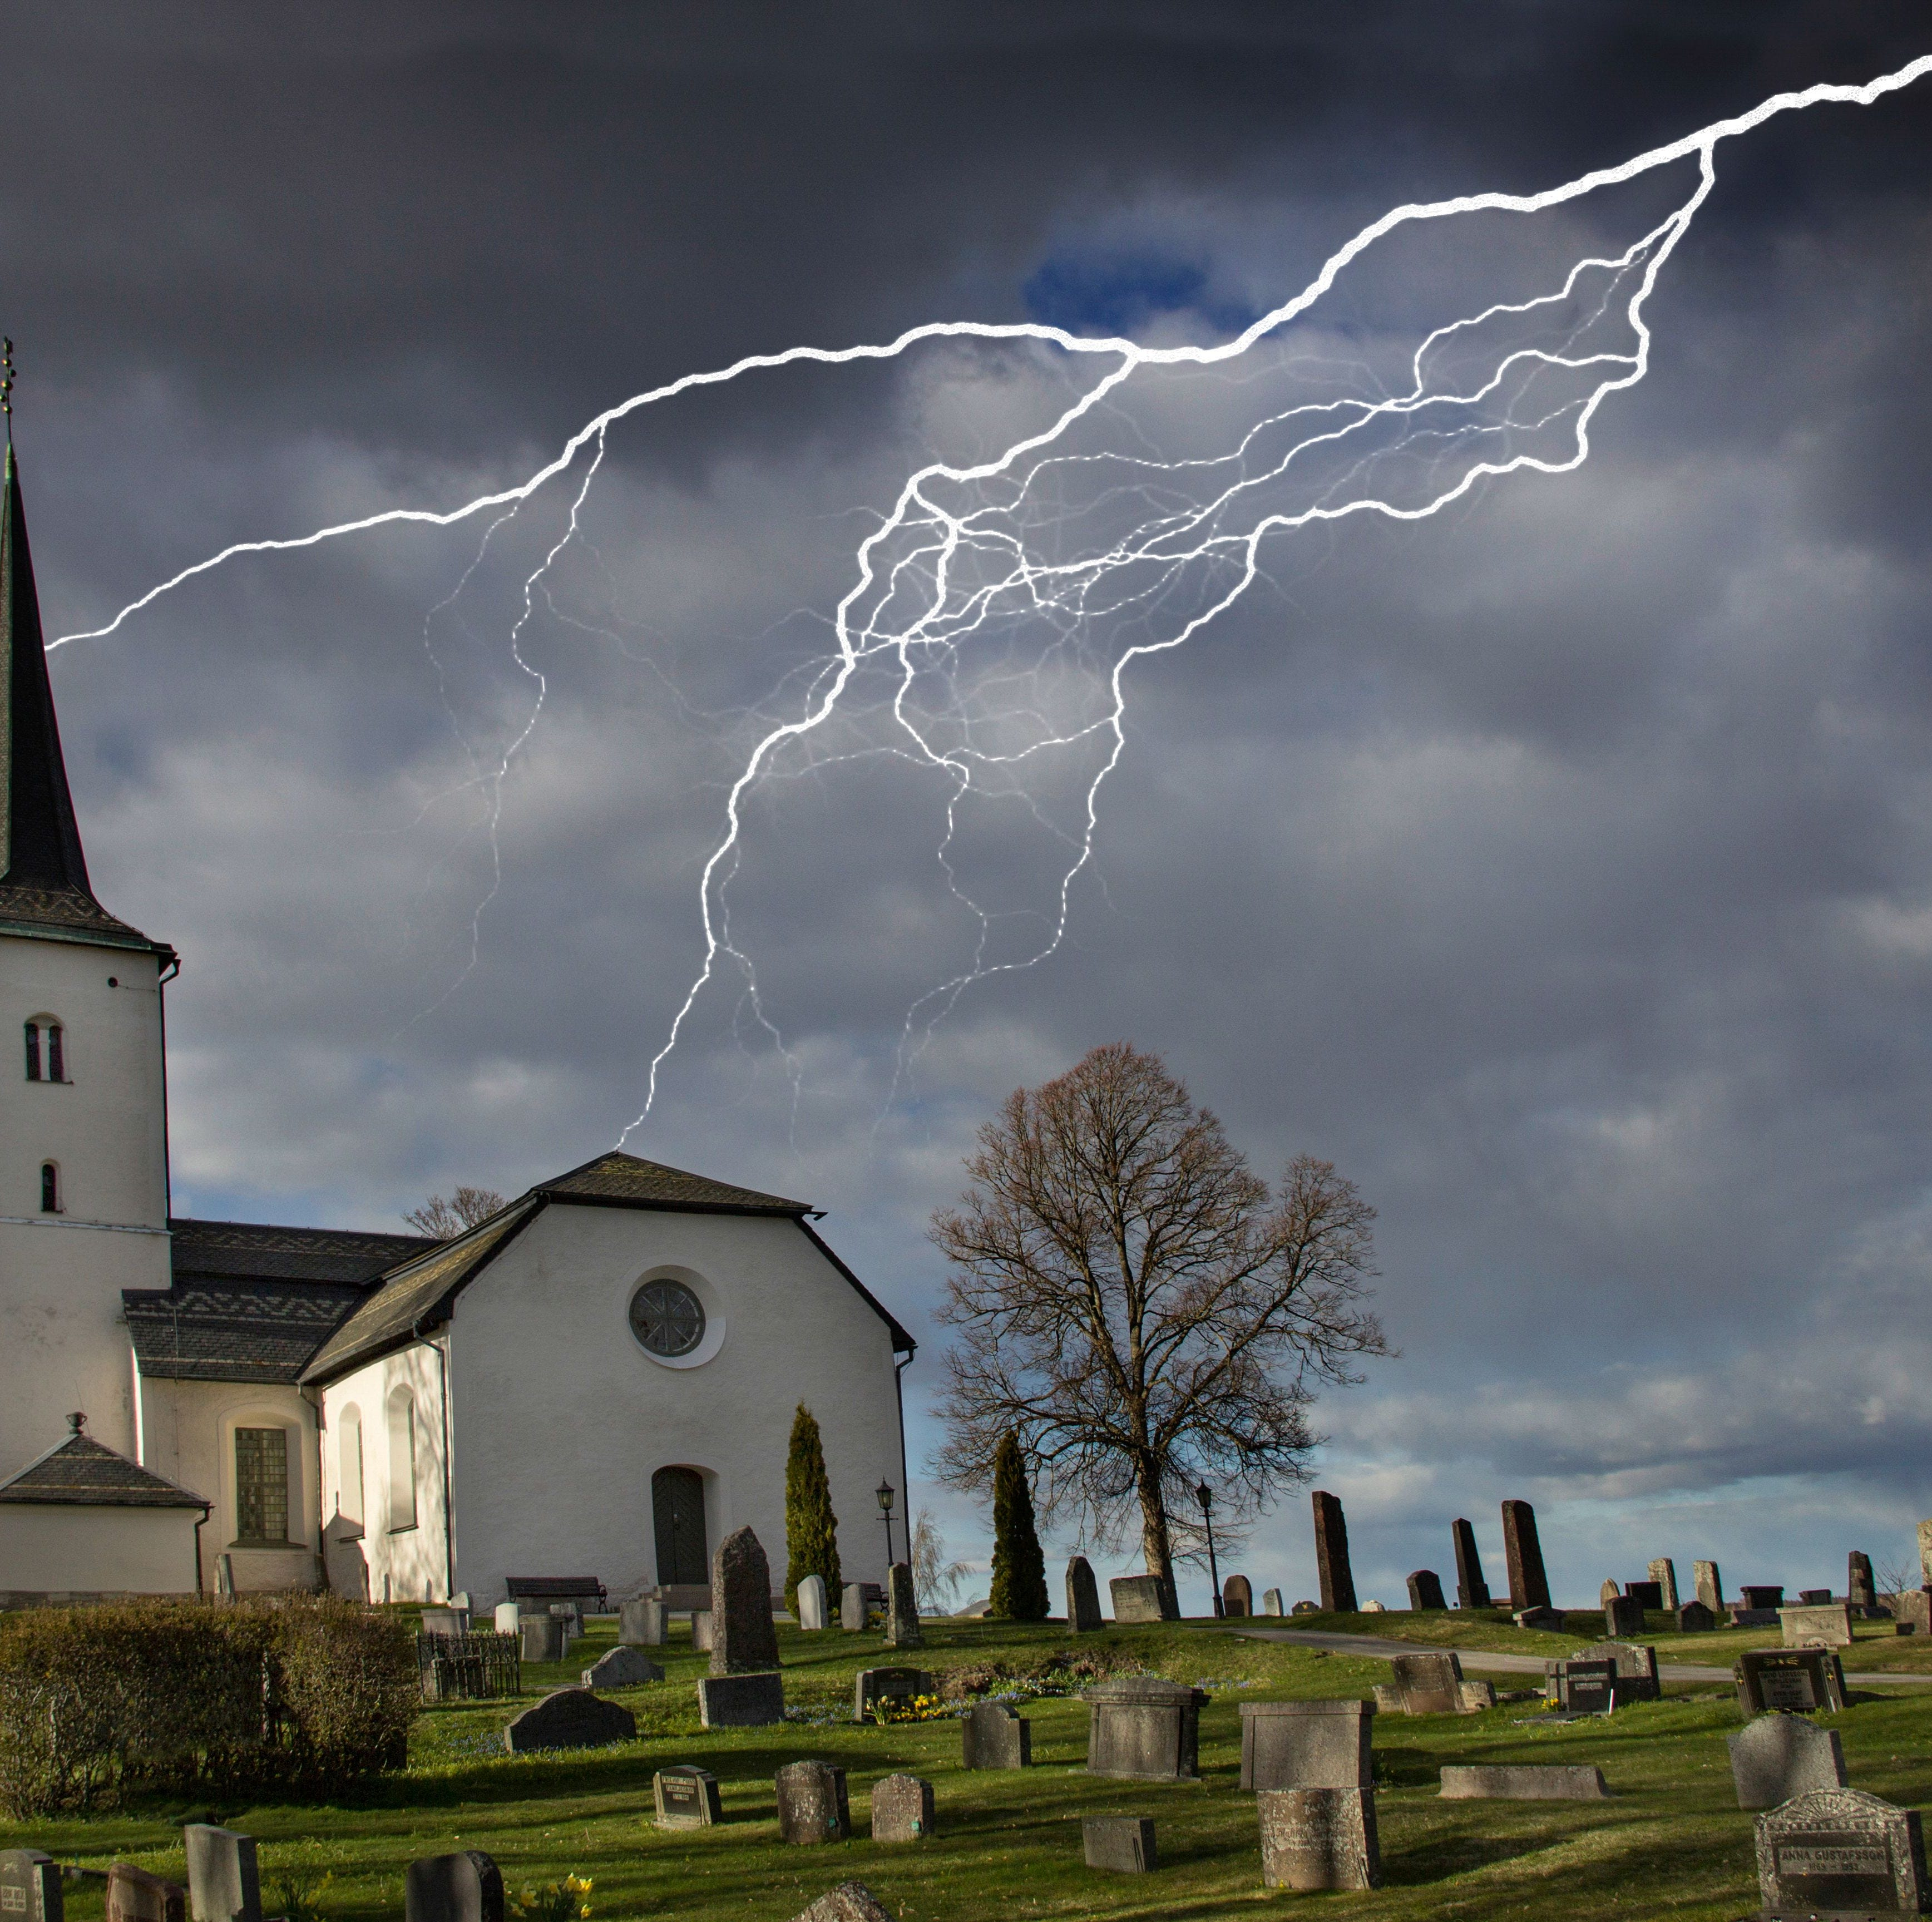 Shocking: Alabama pastor struck by lightning says 'Lord had his hand on me'